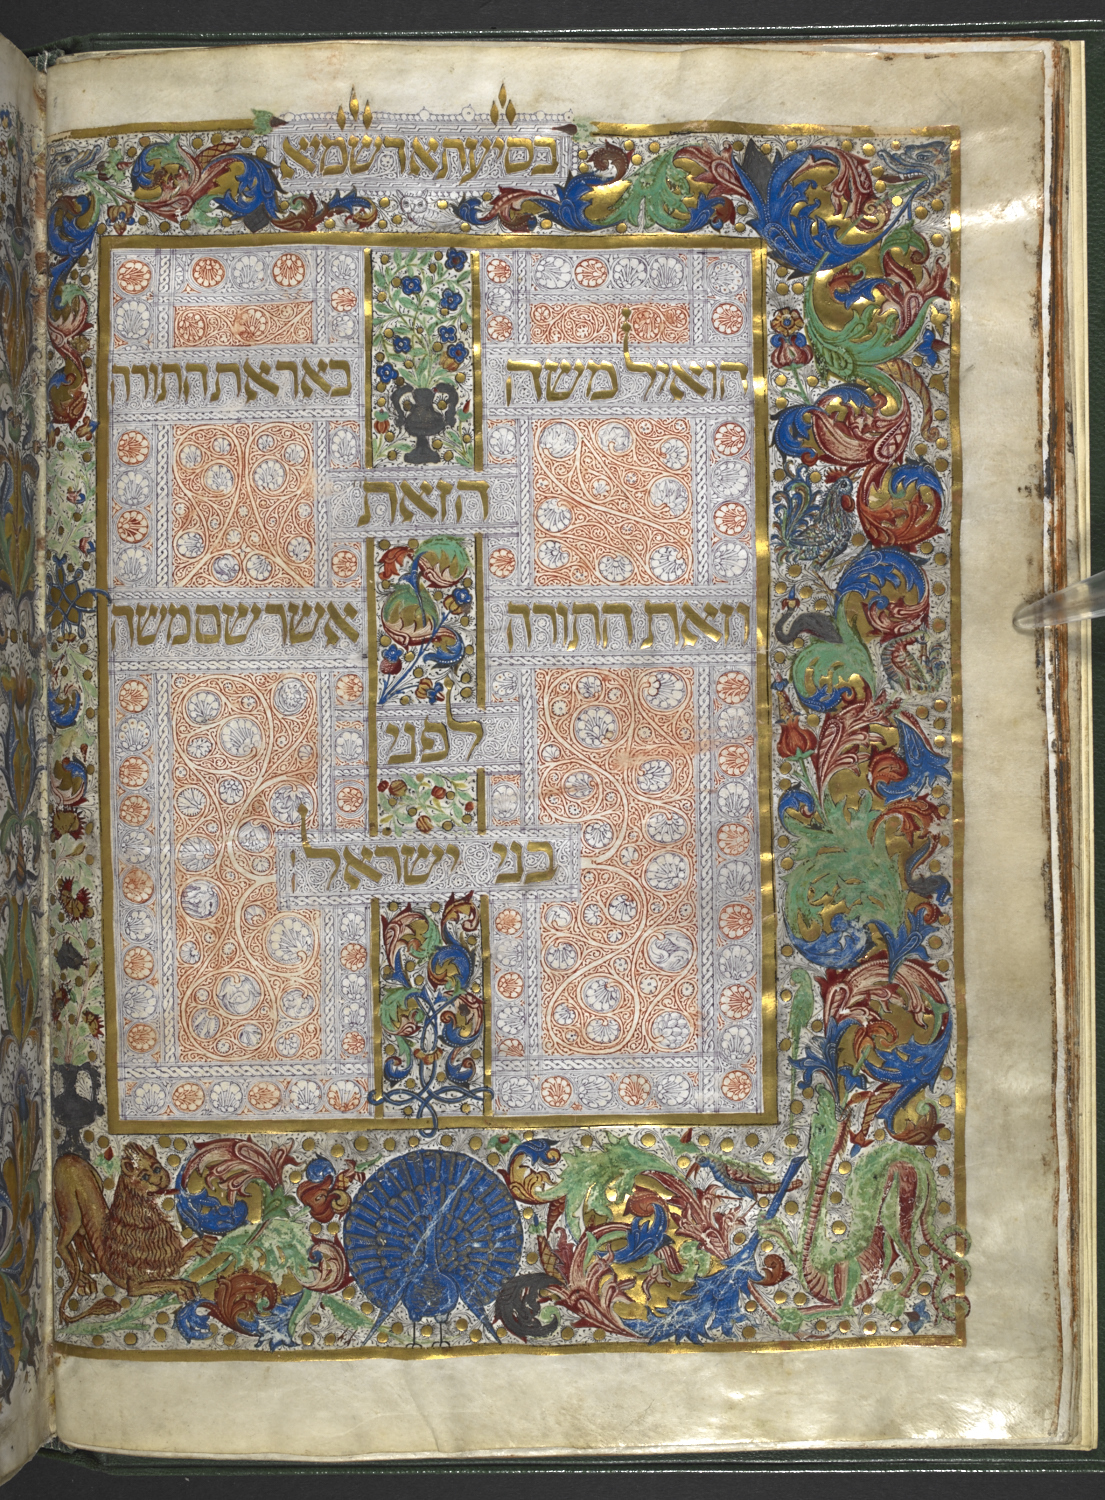 Excerpts from Maimonides' Code of Law, embellished with sumptuous full-border illuminations. Mishneh Torah, Lisbon, 1472 CE (Harley MS 5698).